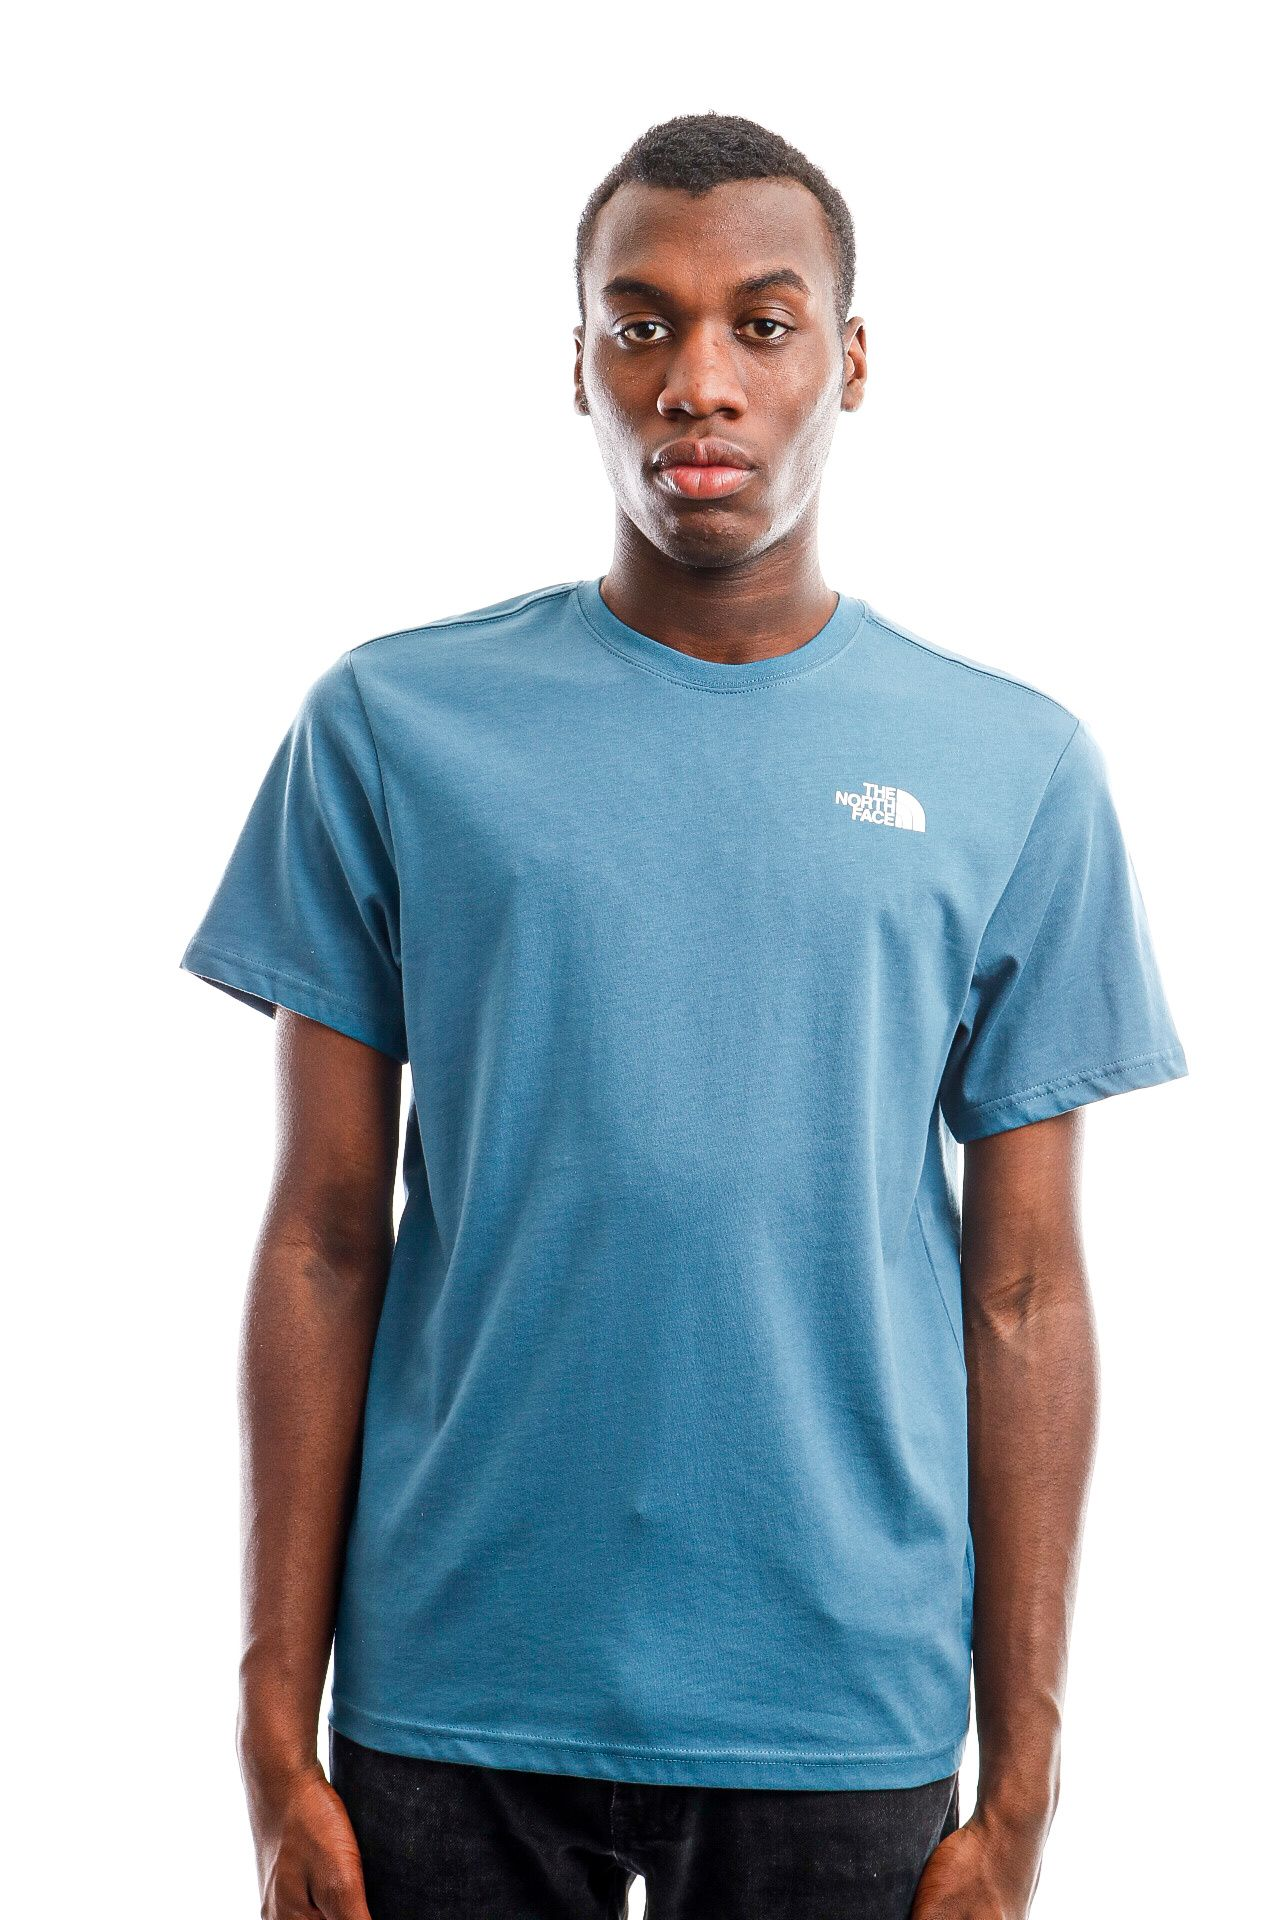 Afbeelding van The North Face T-Shirt Men's S/S Redbox Tee - Eu Mallard Blue/Tnf Black NF0A2TX2SF71